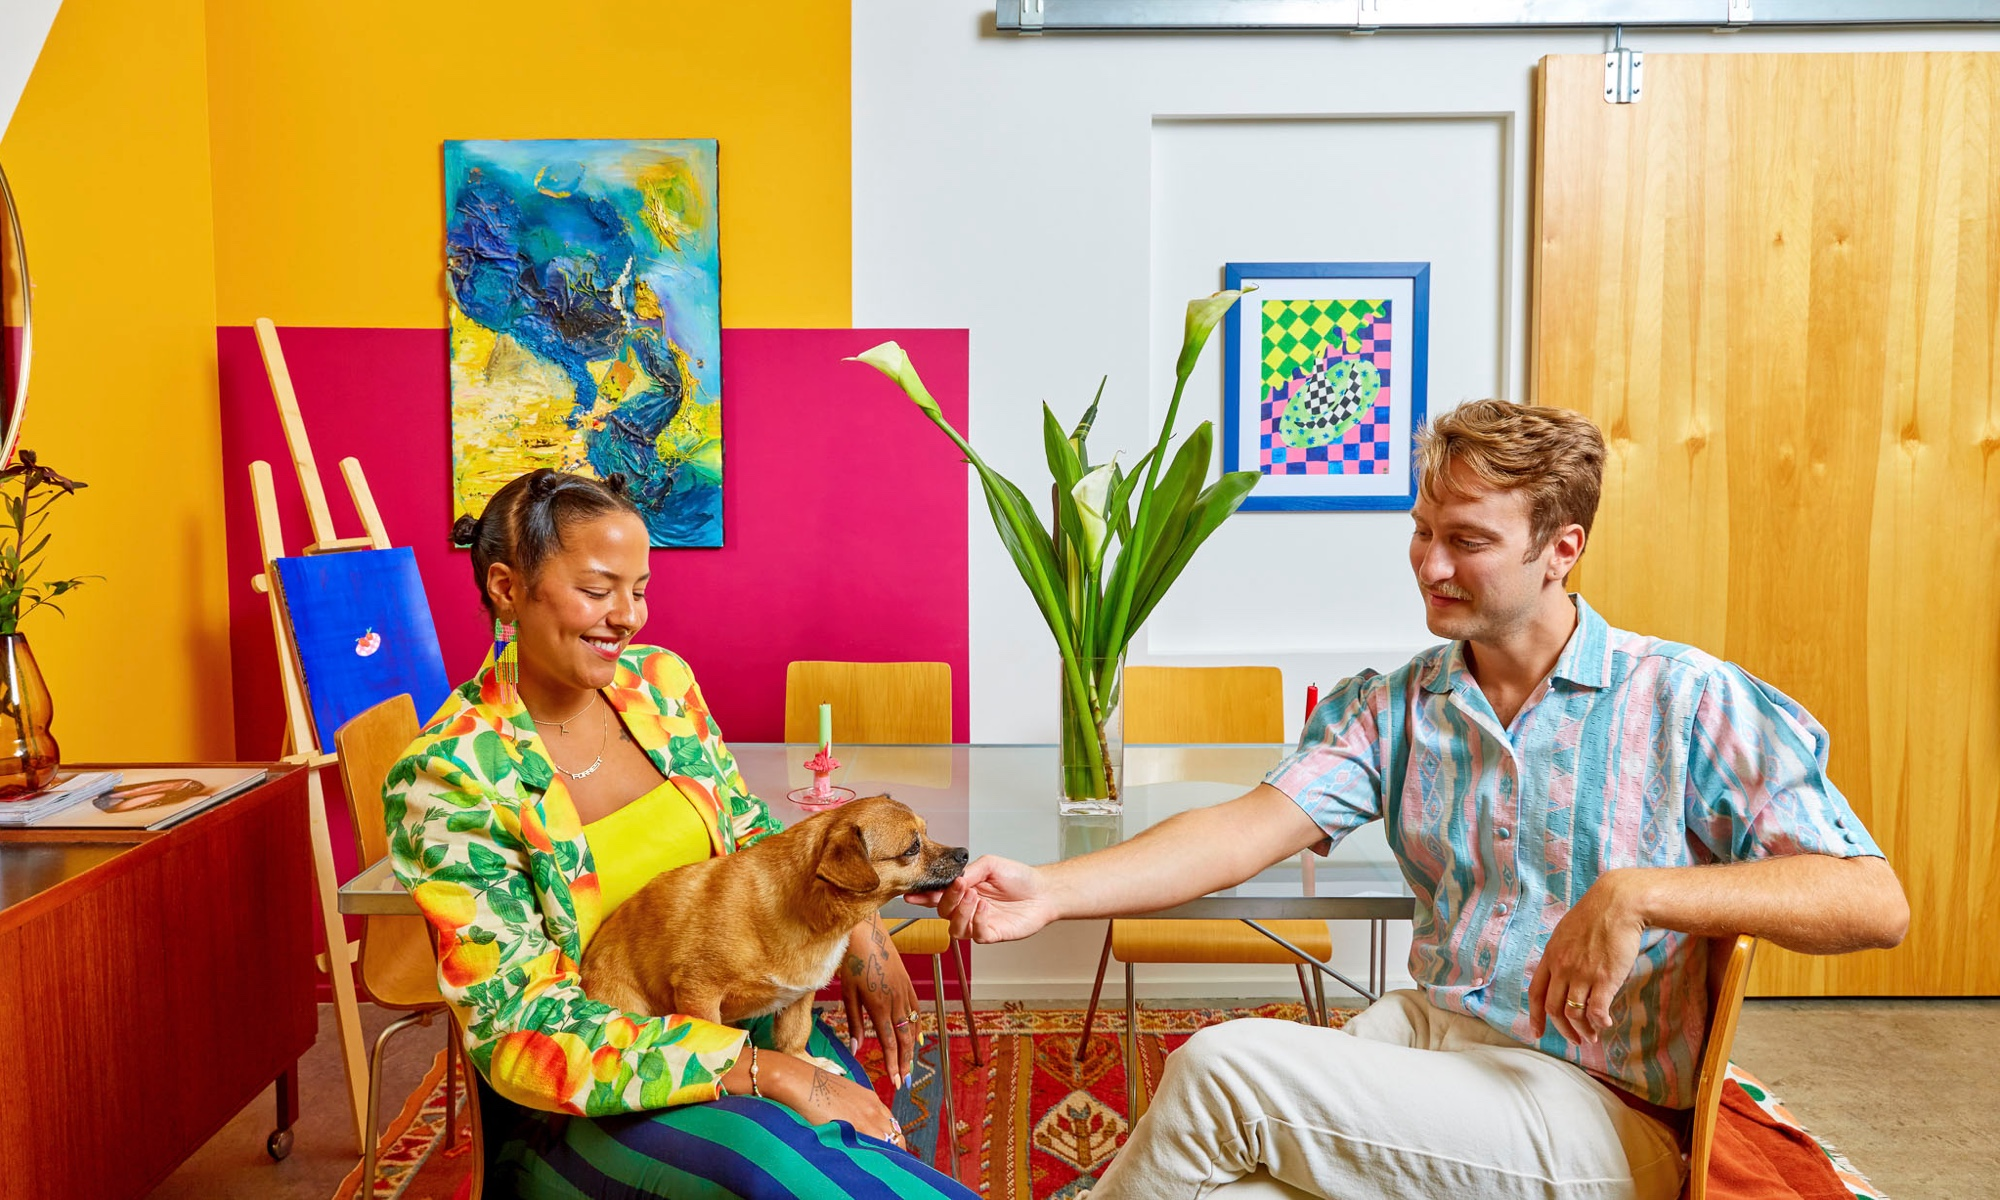 Michelle Norris and Forrest Aguar (and pup Taco) in their Atlanta home.